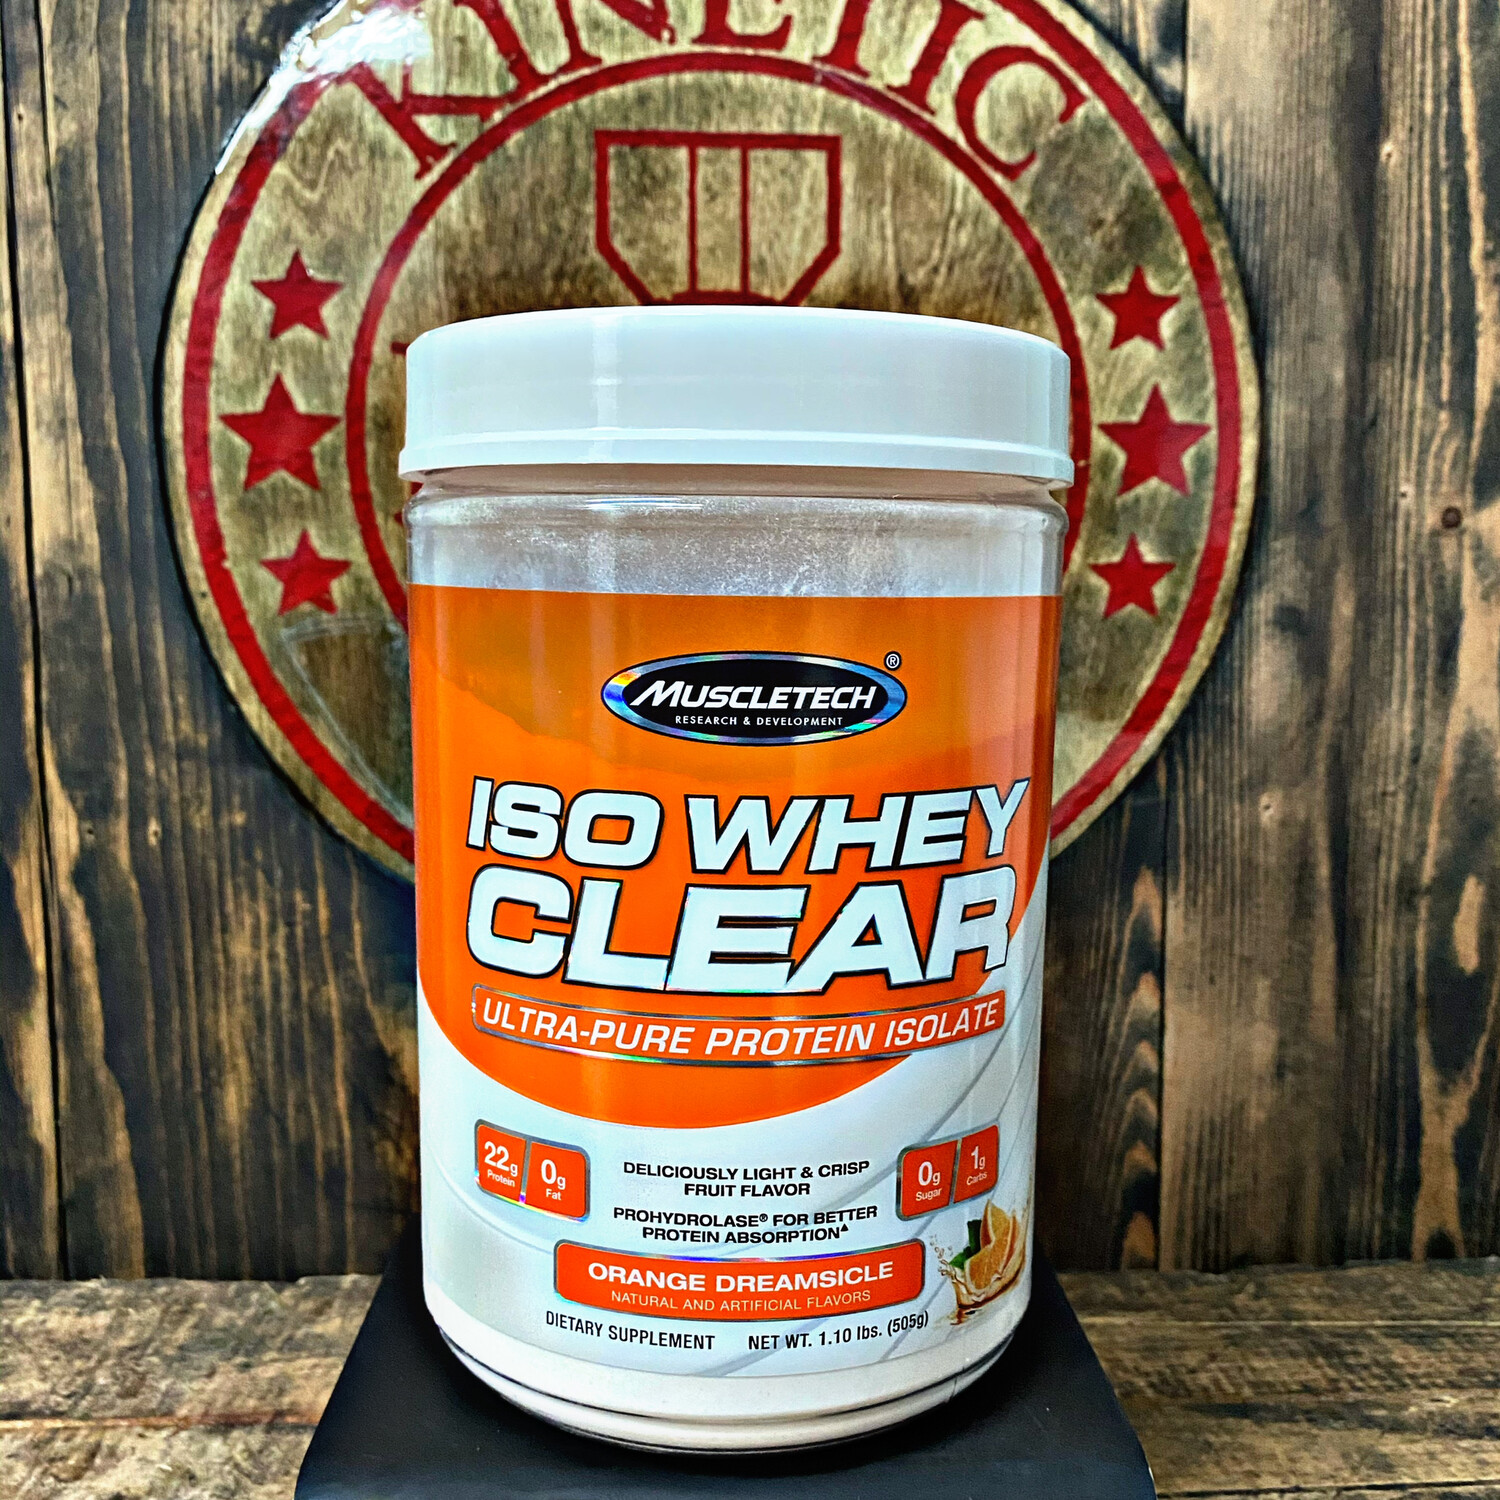 Muscletech, Iso Whey Clear Protein, 19 Servings, Orange Dreamsicle